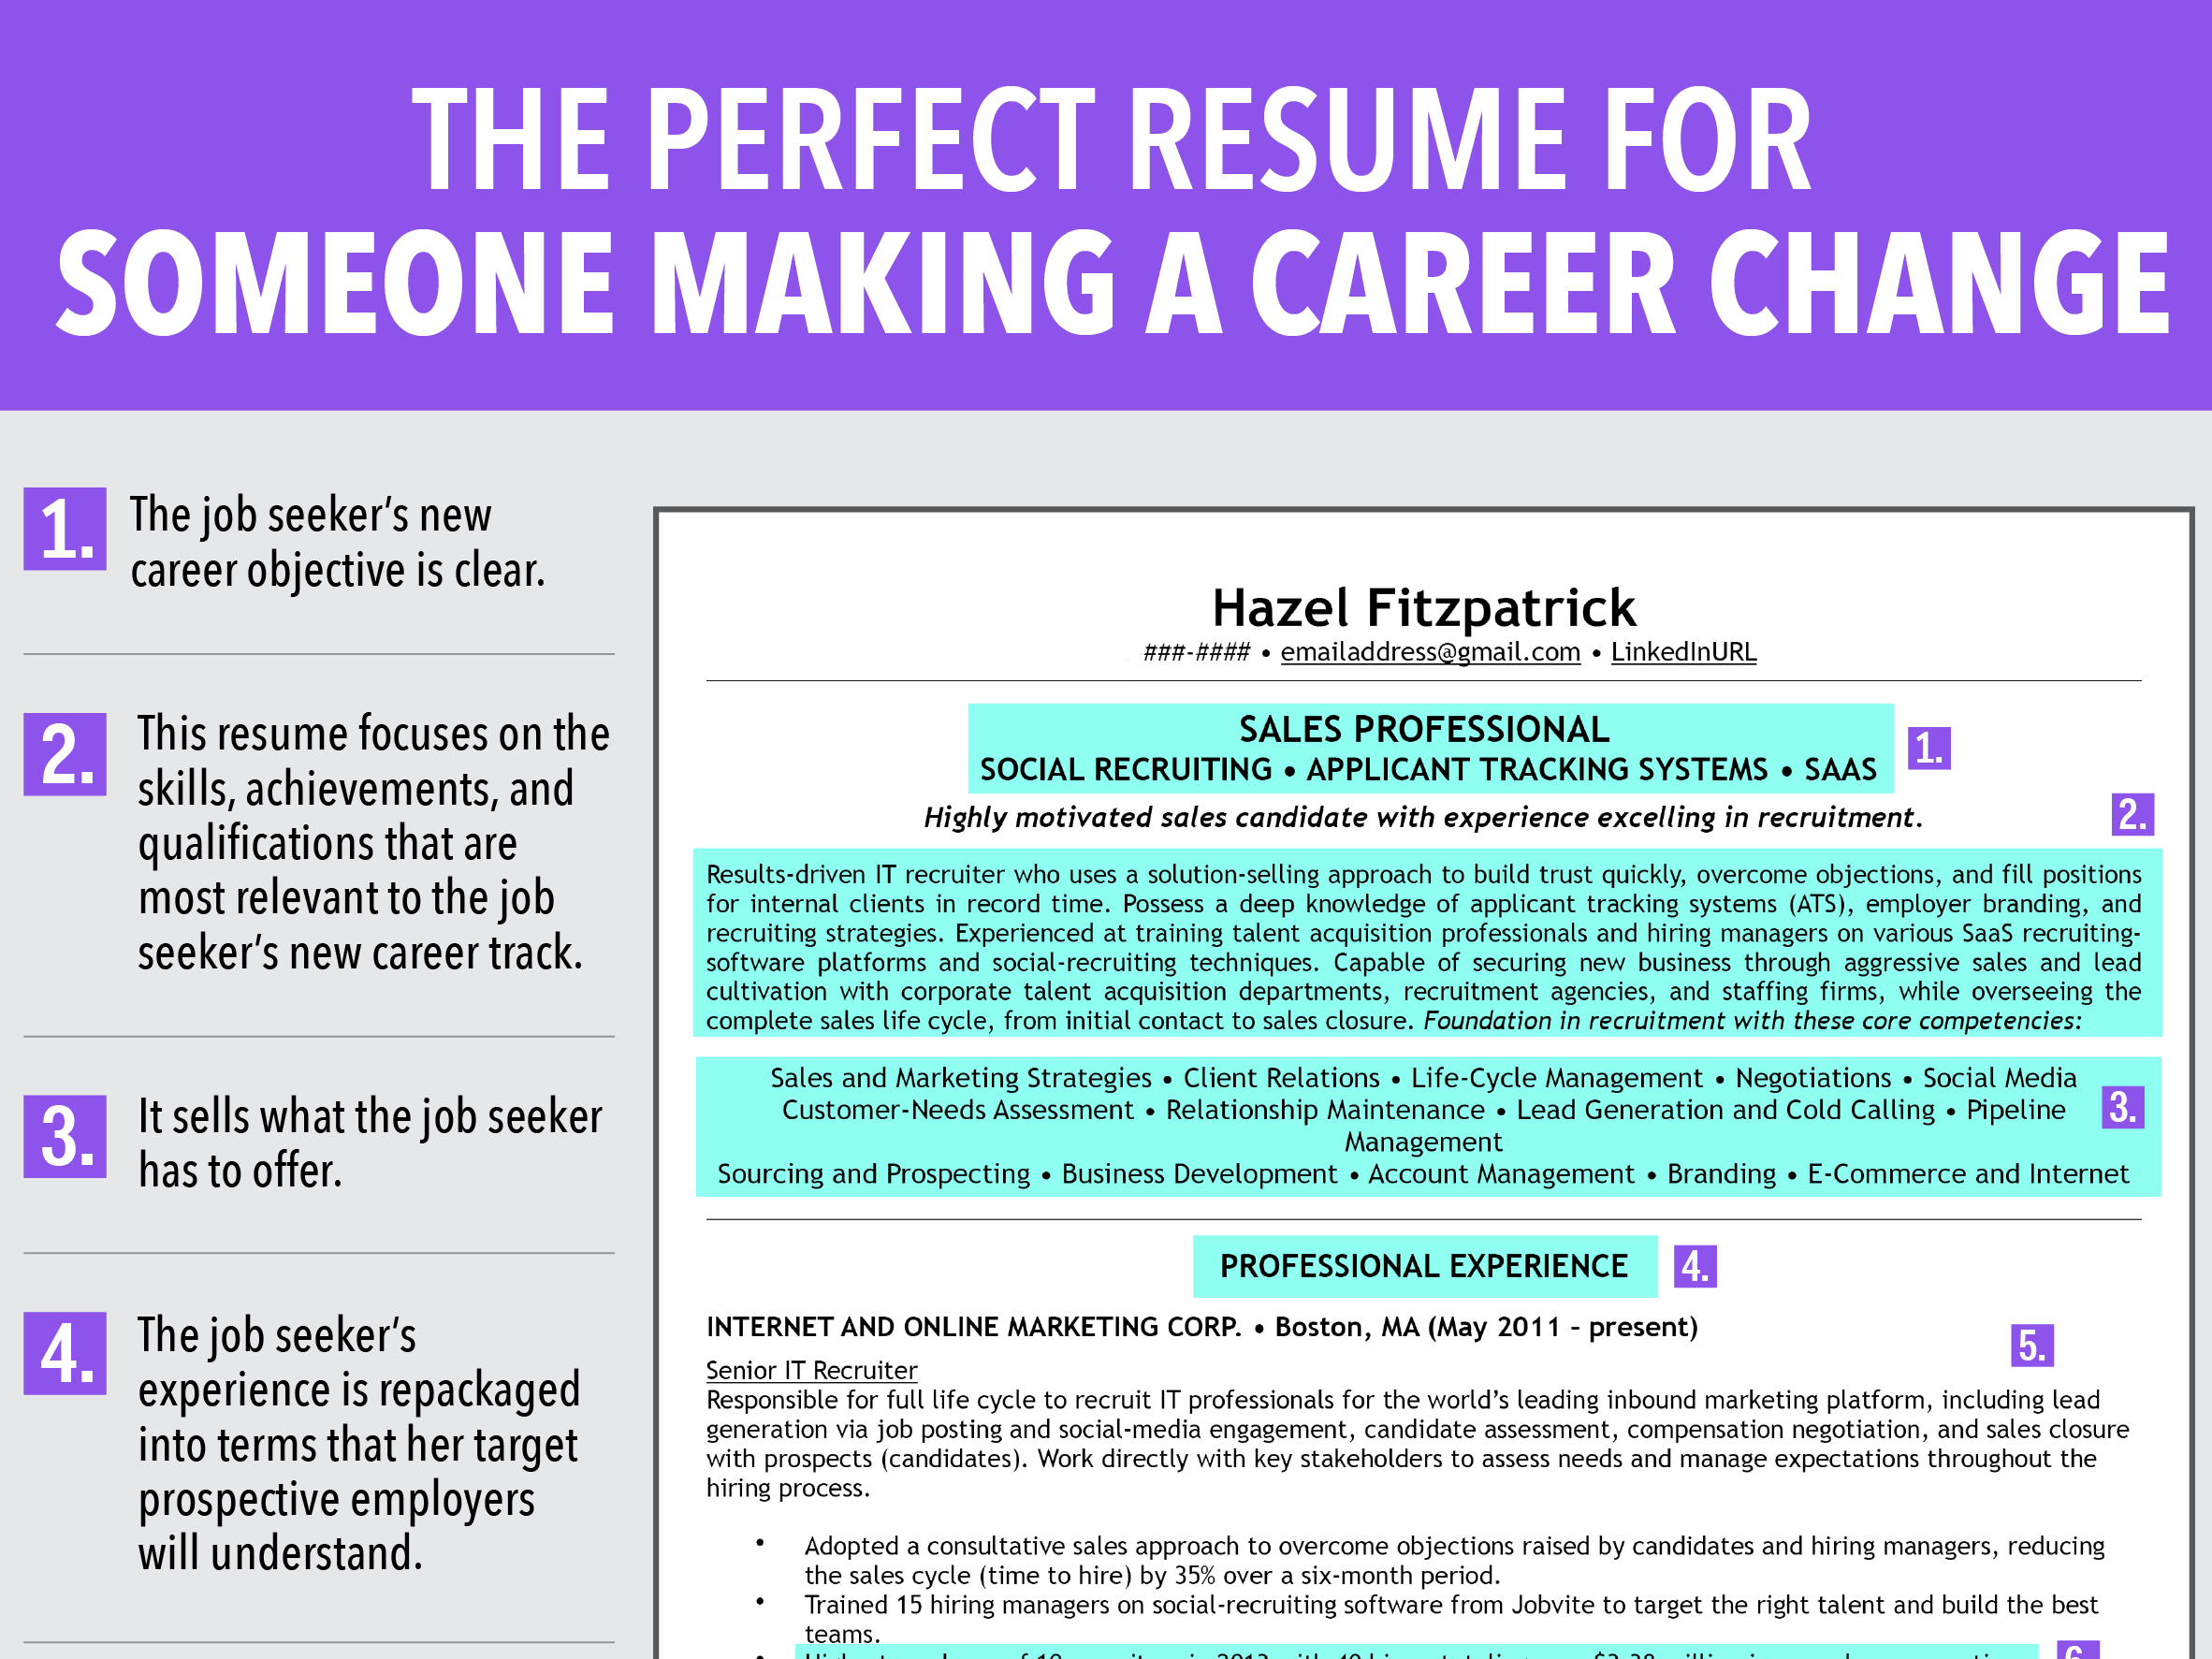 ideal for someone making a career change business insider